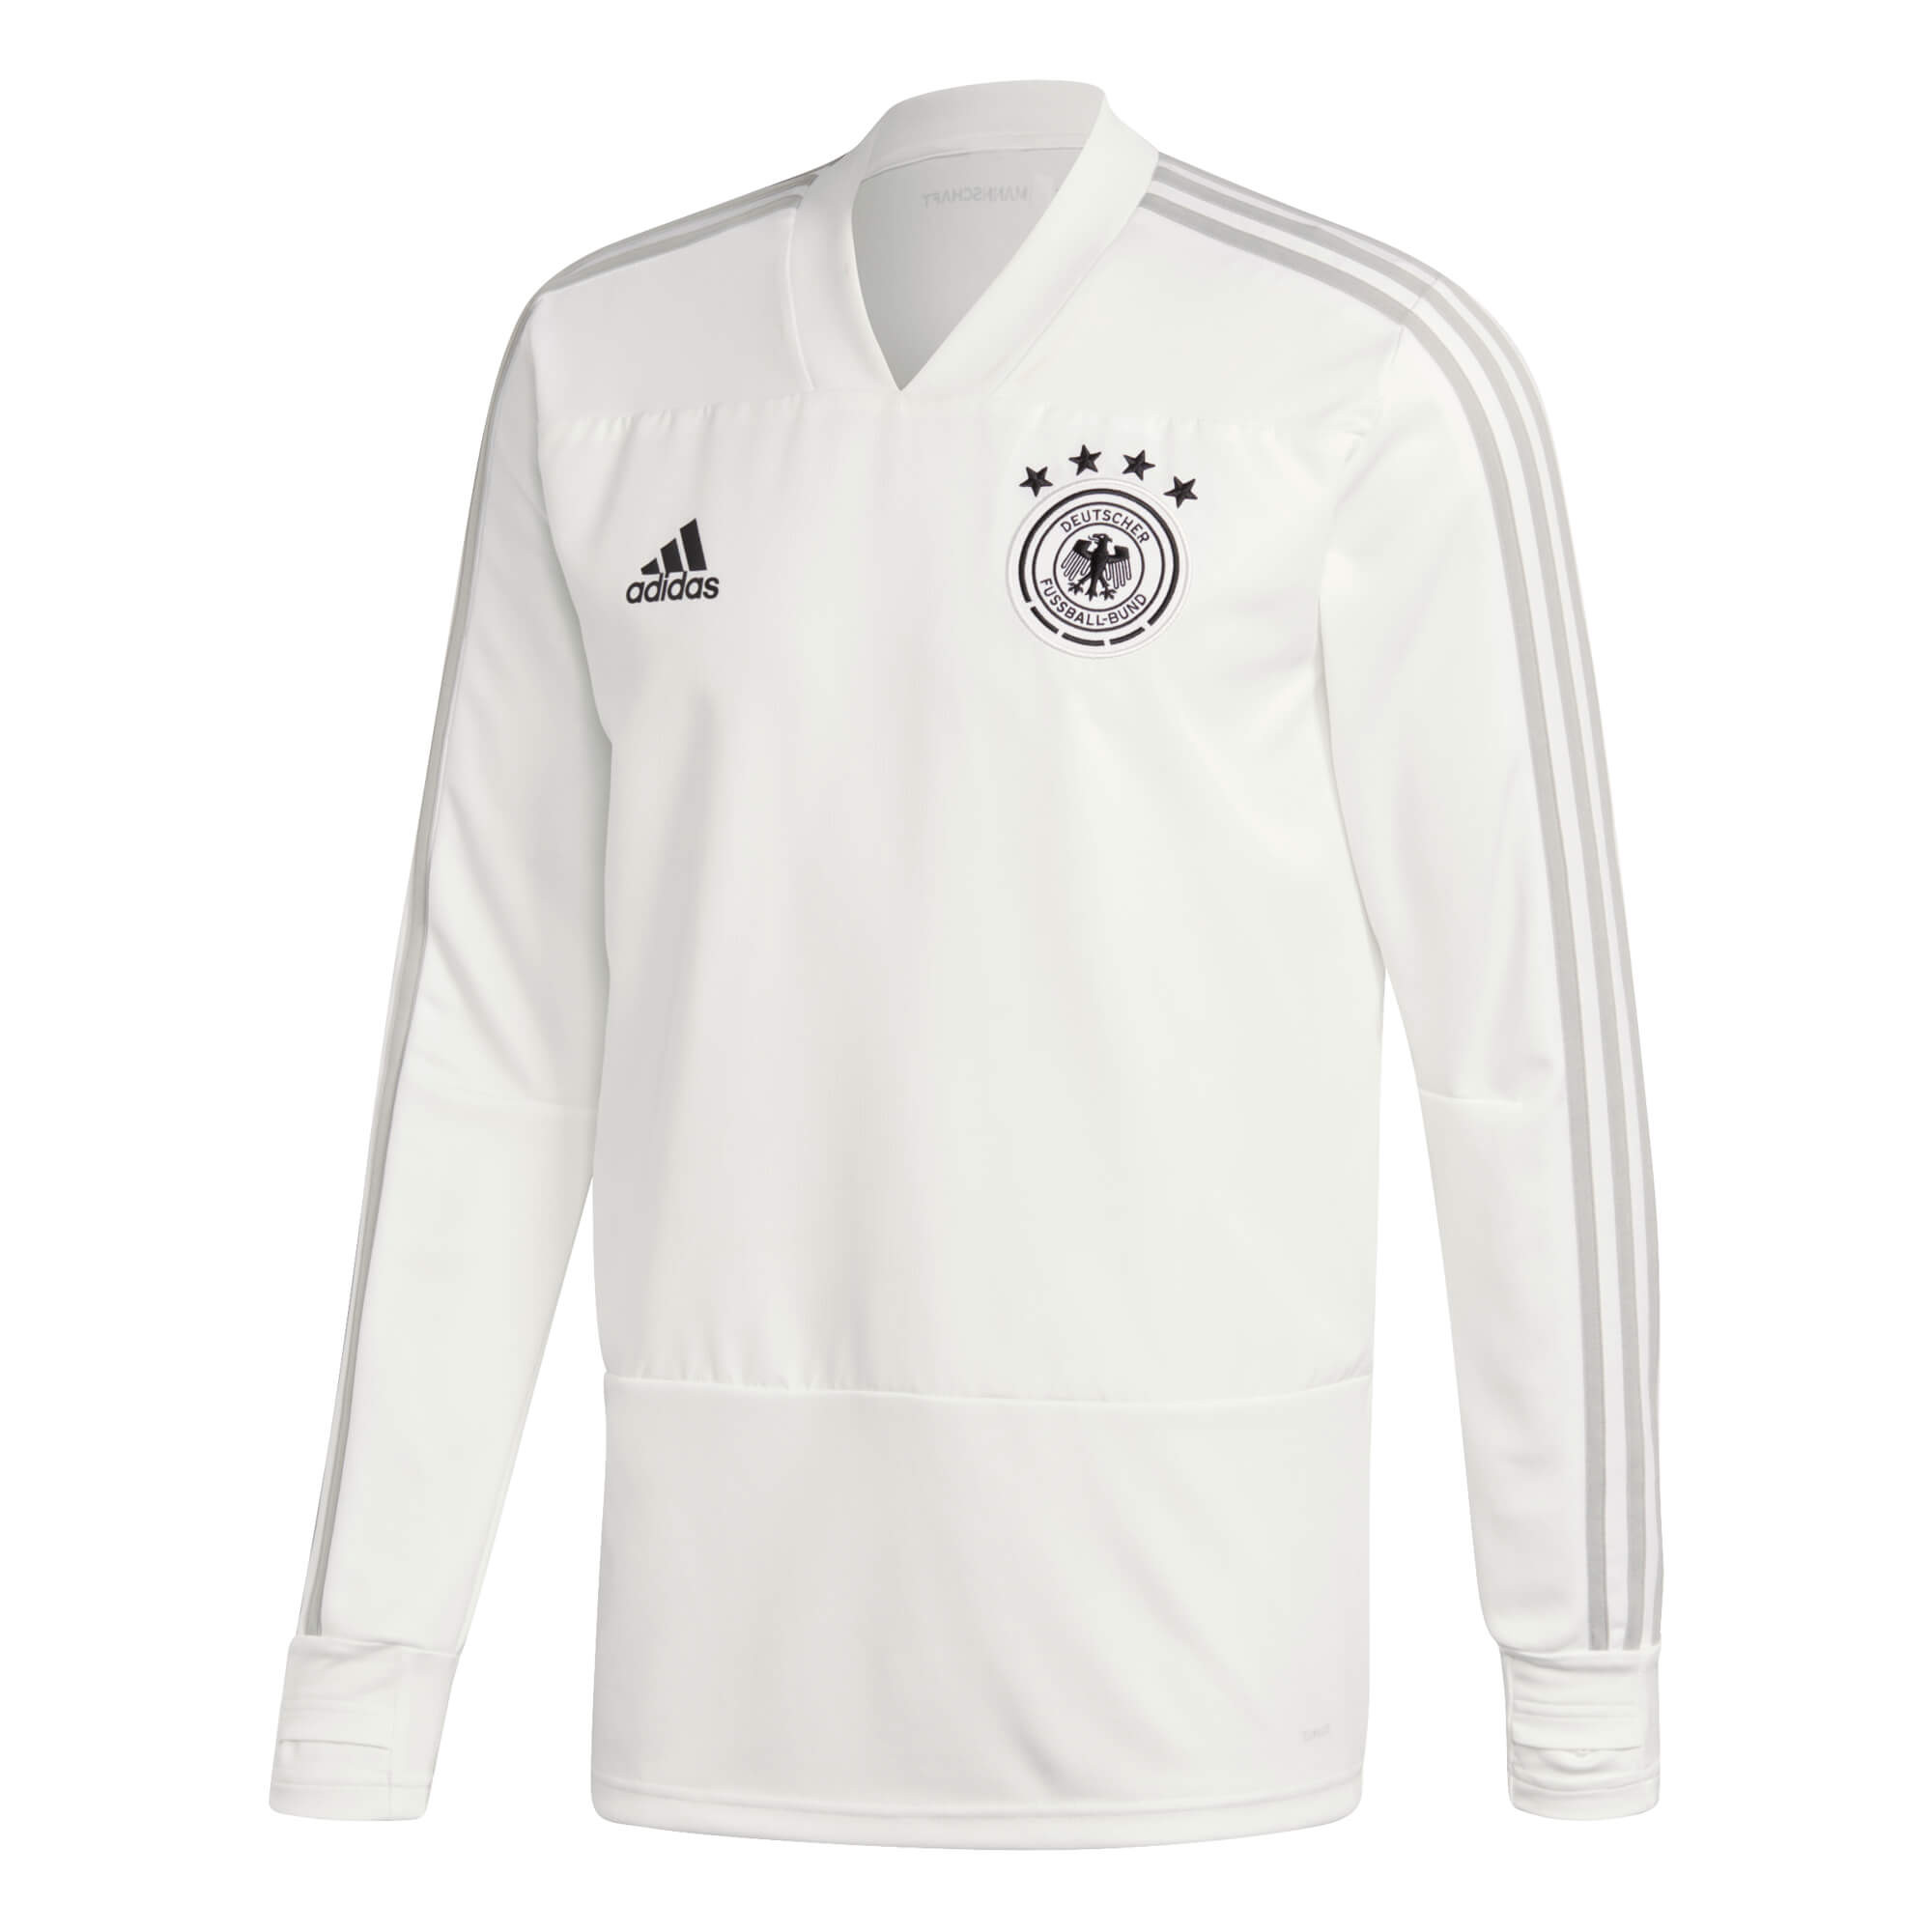 ADIDAS ALLEMAGNE TRG TOP BLANC 2018